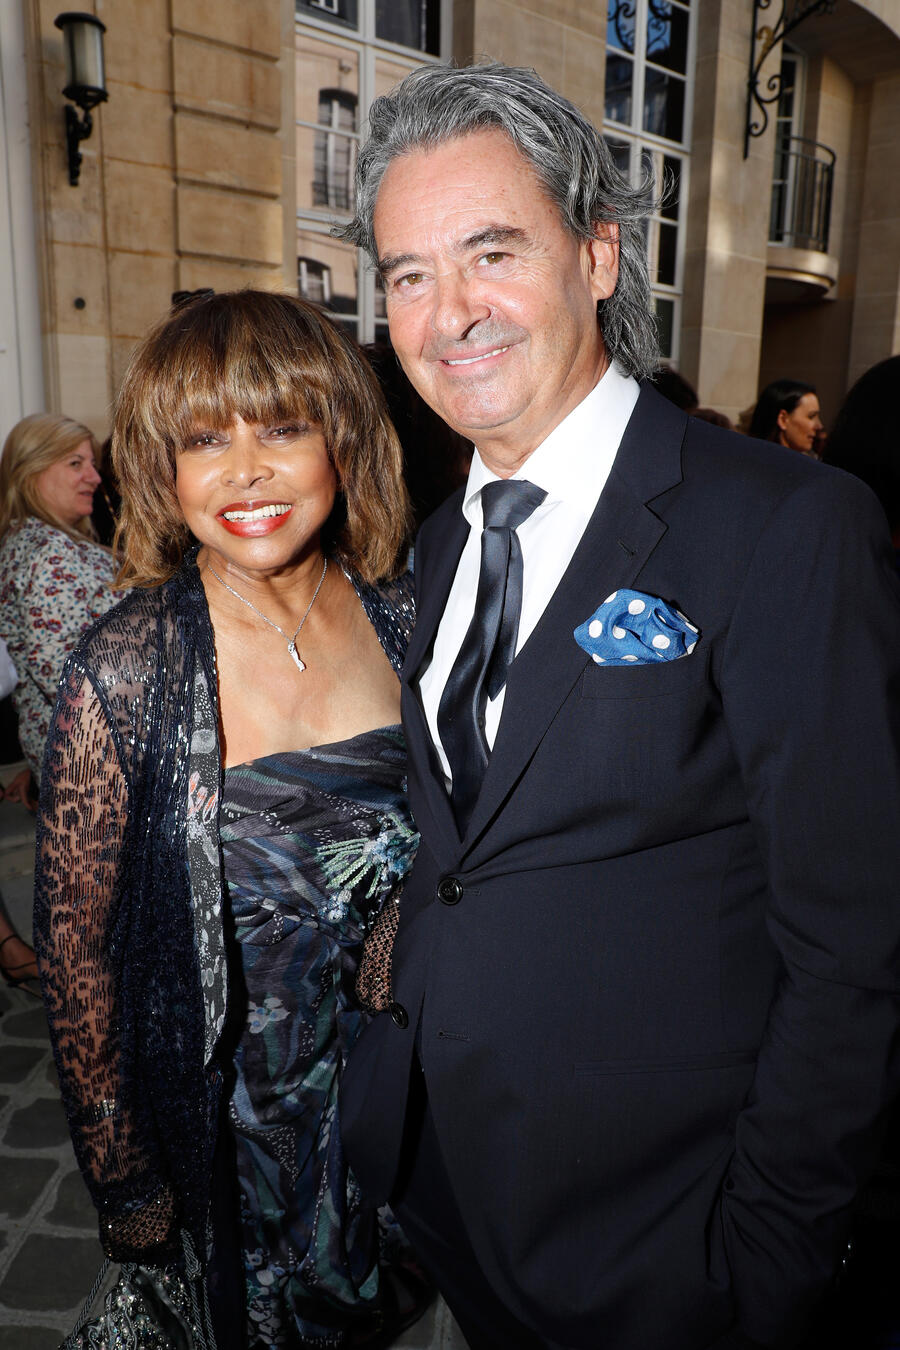 PARIS, FRANCE - JULY 03:  Singer Tina Turner and her husband Erwin Bach attend the Giorgio Armani Prive Haute Couture Fall Winter 2018/2019 show as part of Paris Fashion Week on July 3, 2018 in Paris, France.  (Photo by Bertrand Rindoff Petroff/Getty Images)